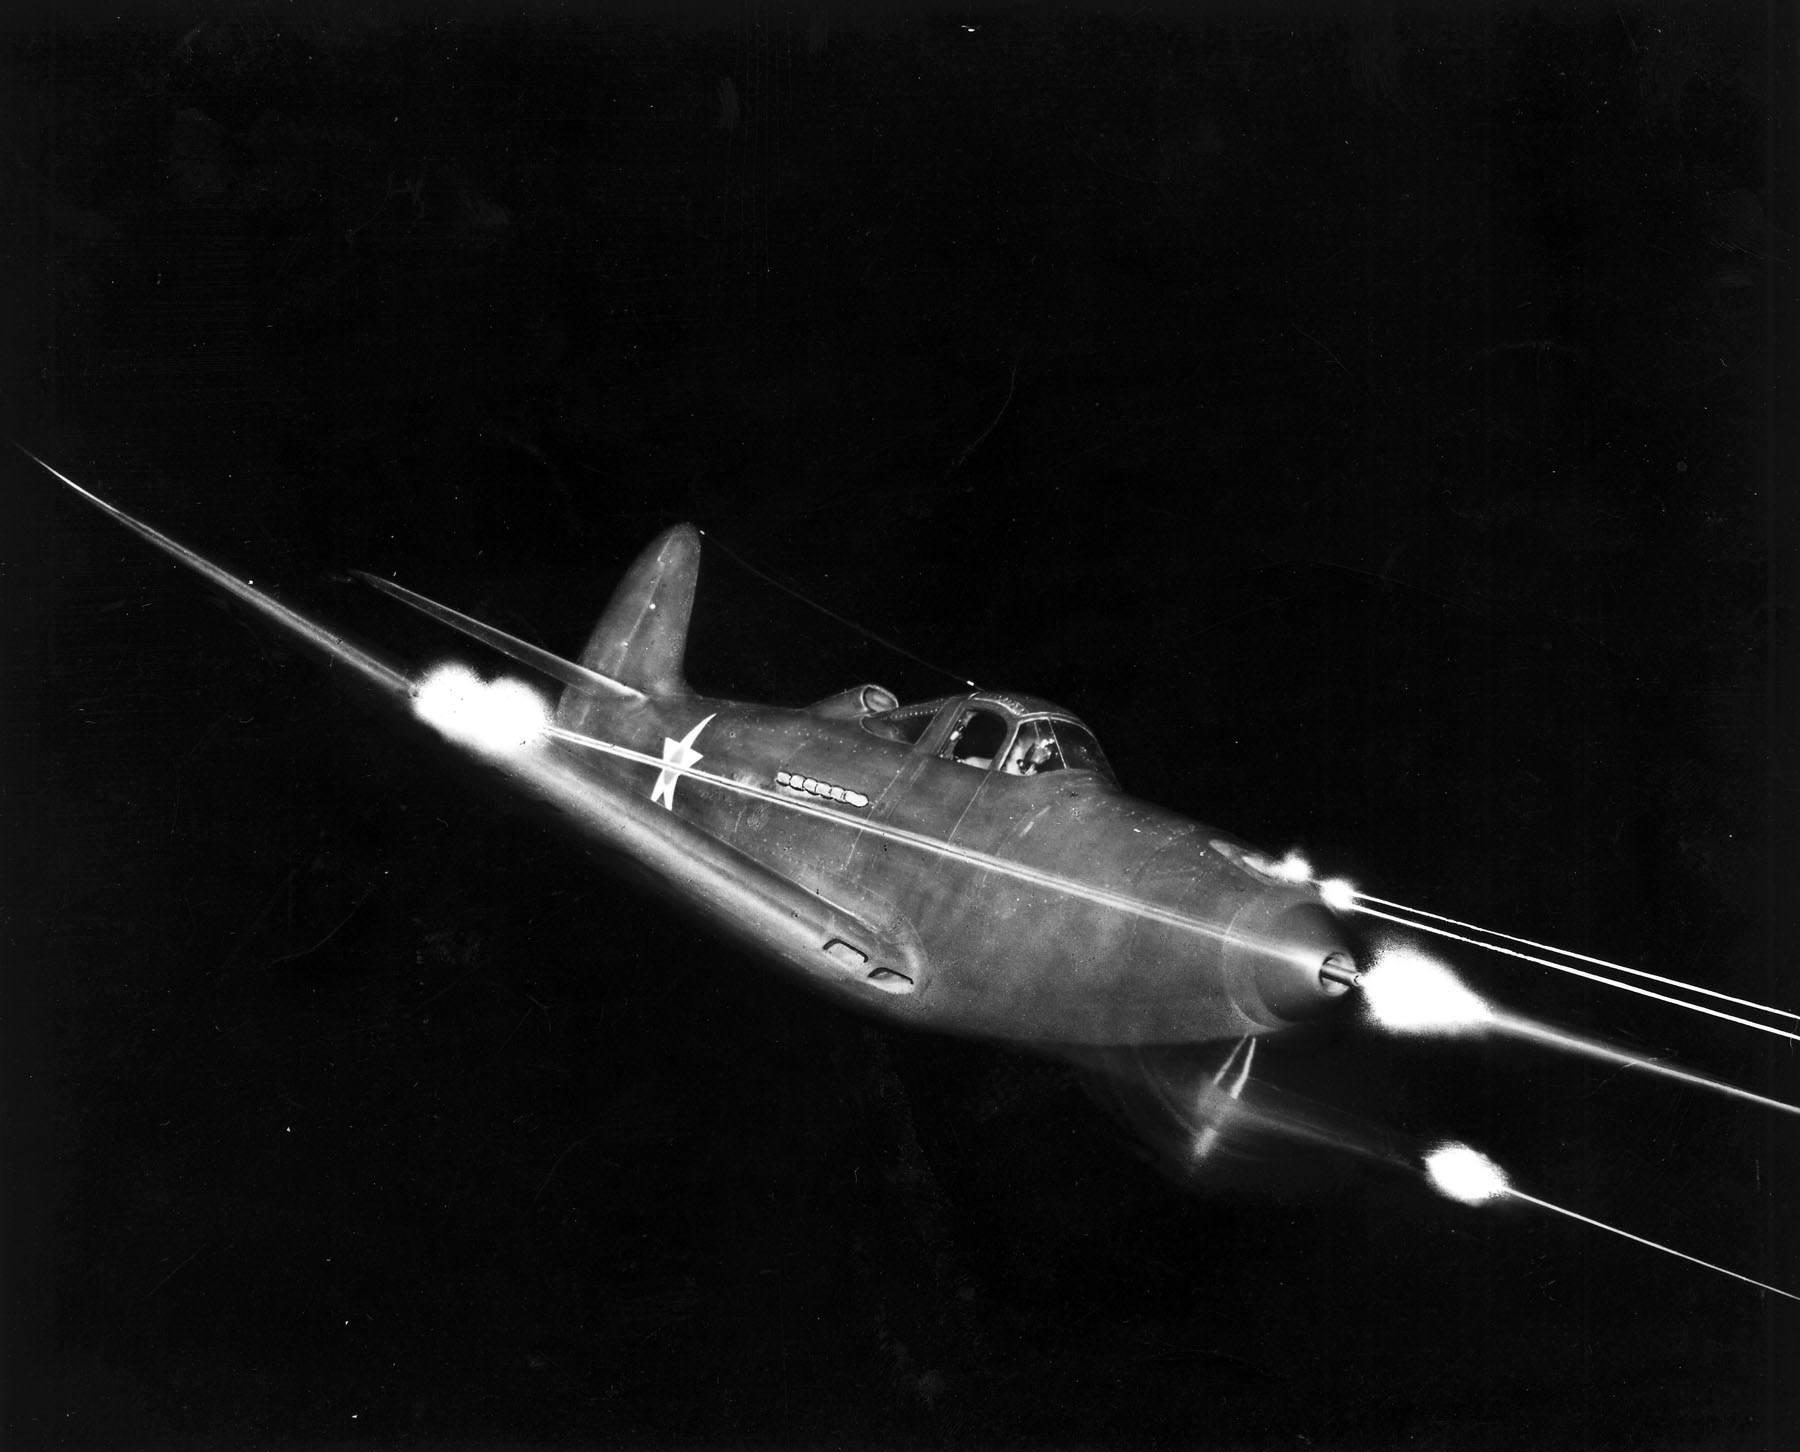 Bell P 39 Airacobra in flight firing all weapons at night - Un P39 Airacobra faisant feu la nuit